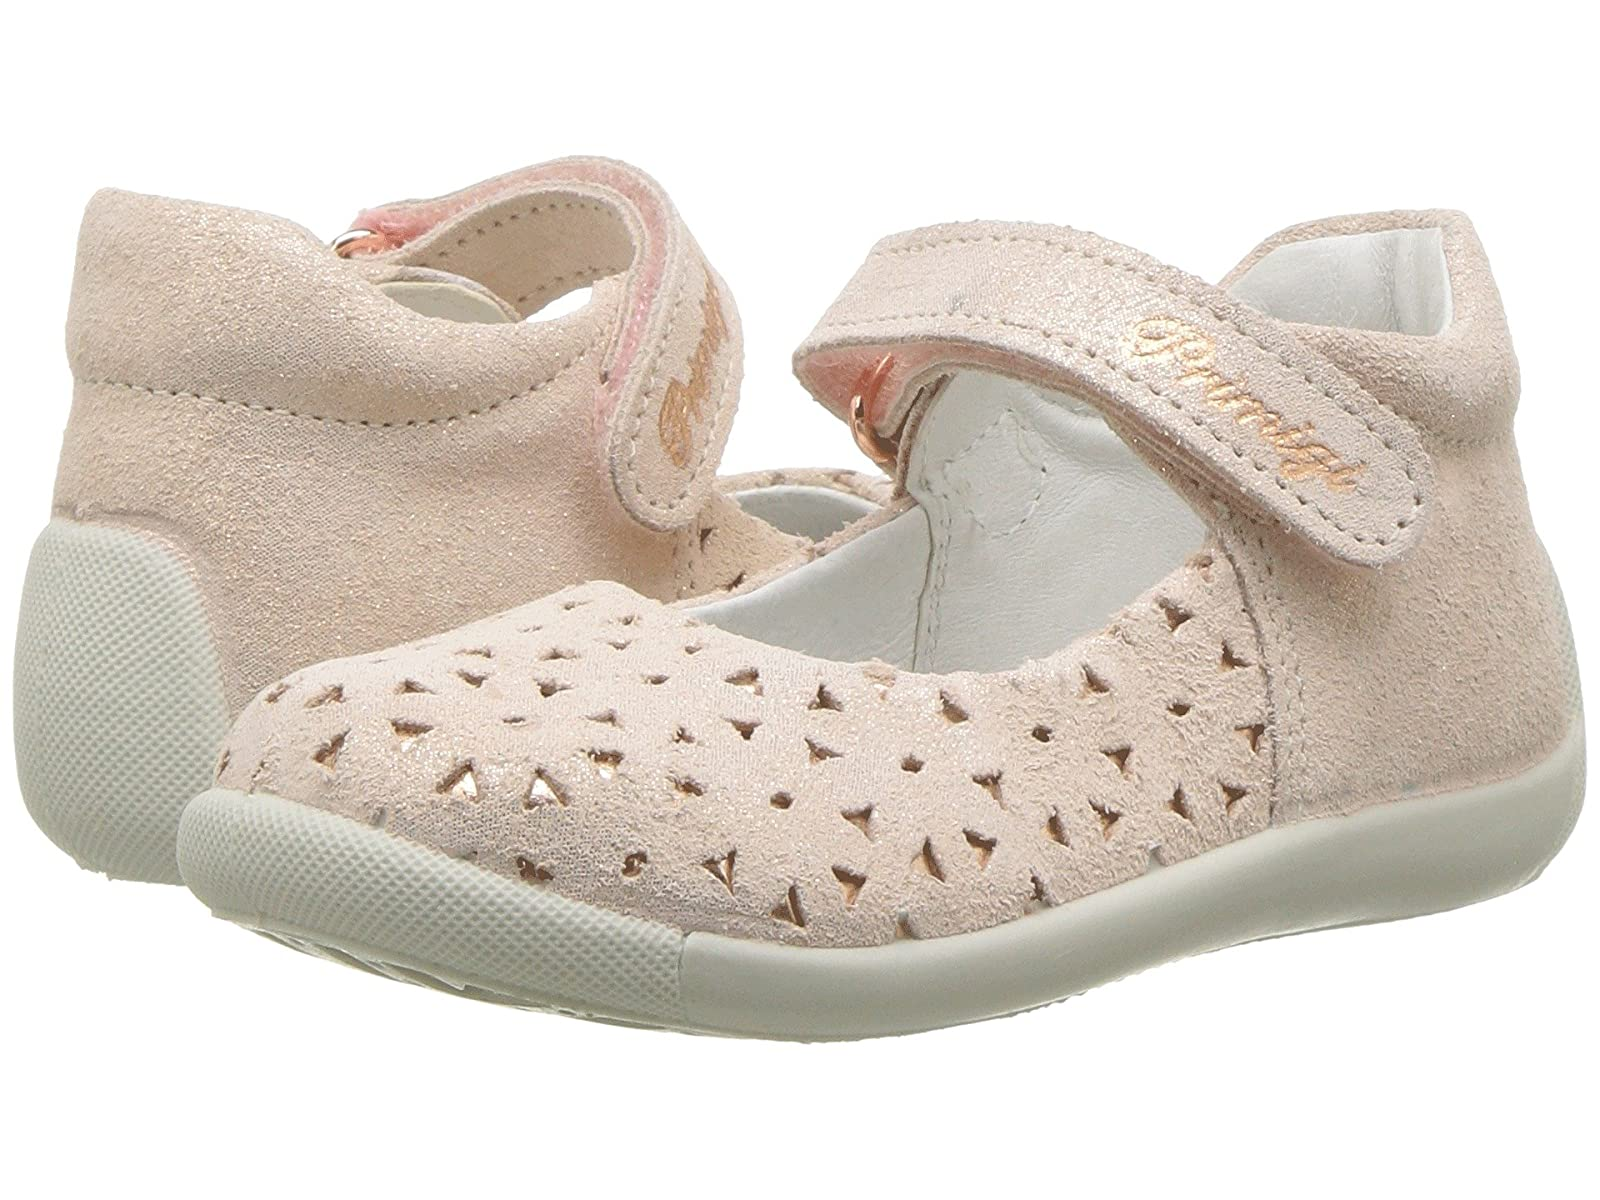 Primigi Kids PSU 13513 (Infant/Toddler)Atmospheric grades have affordable shoes